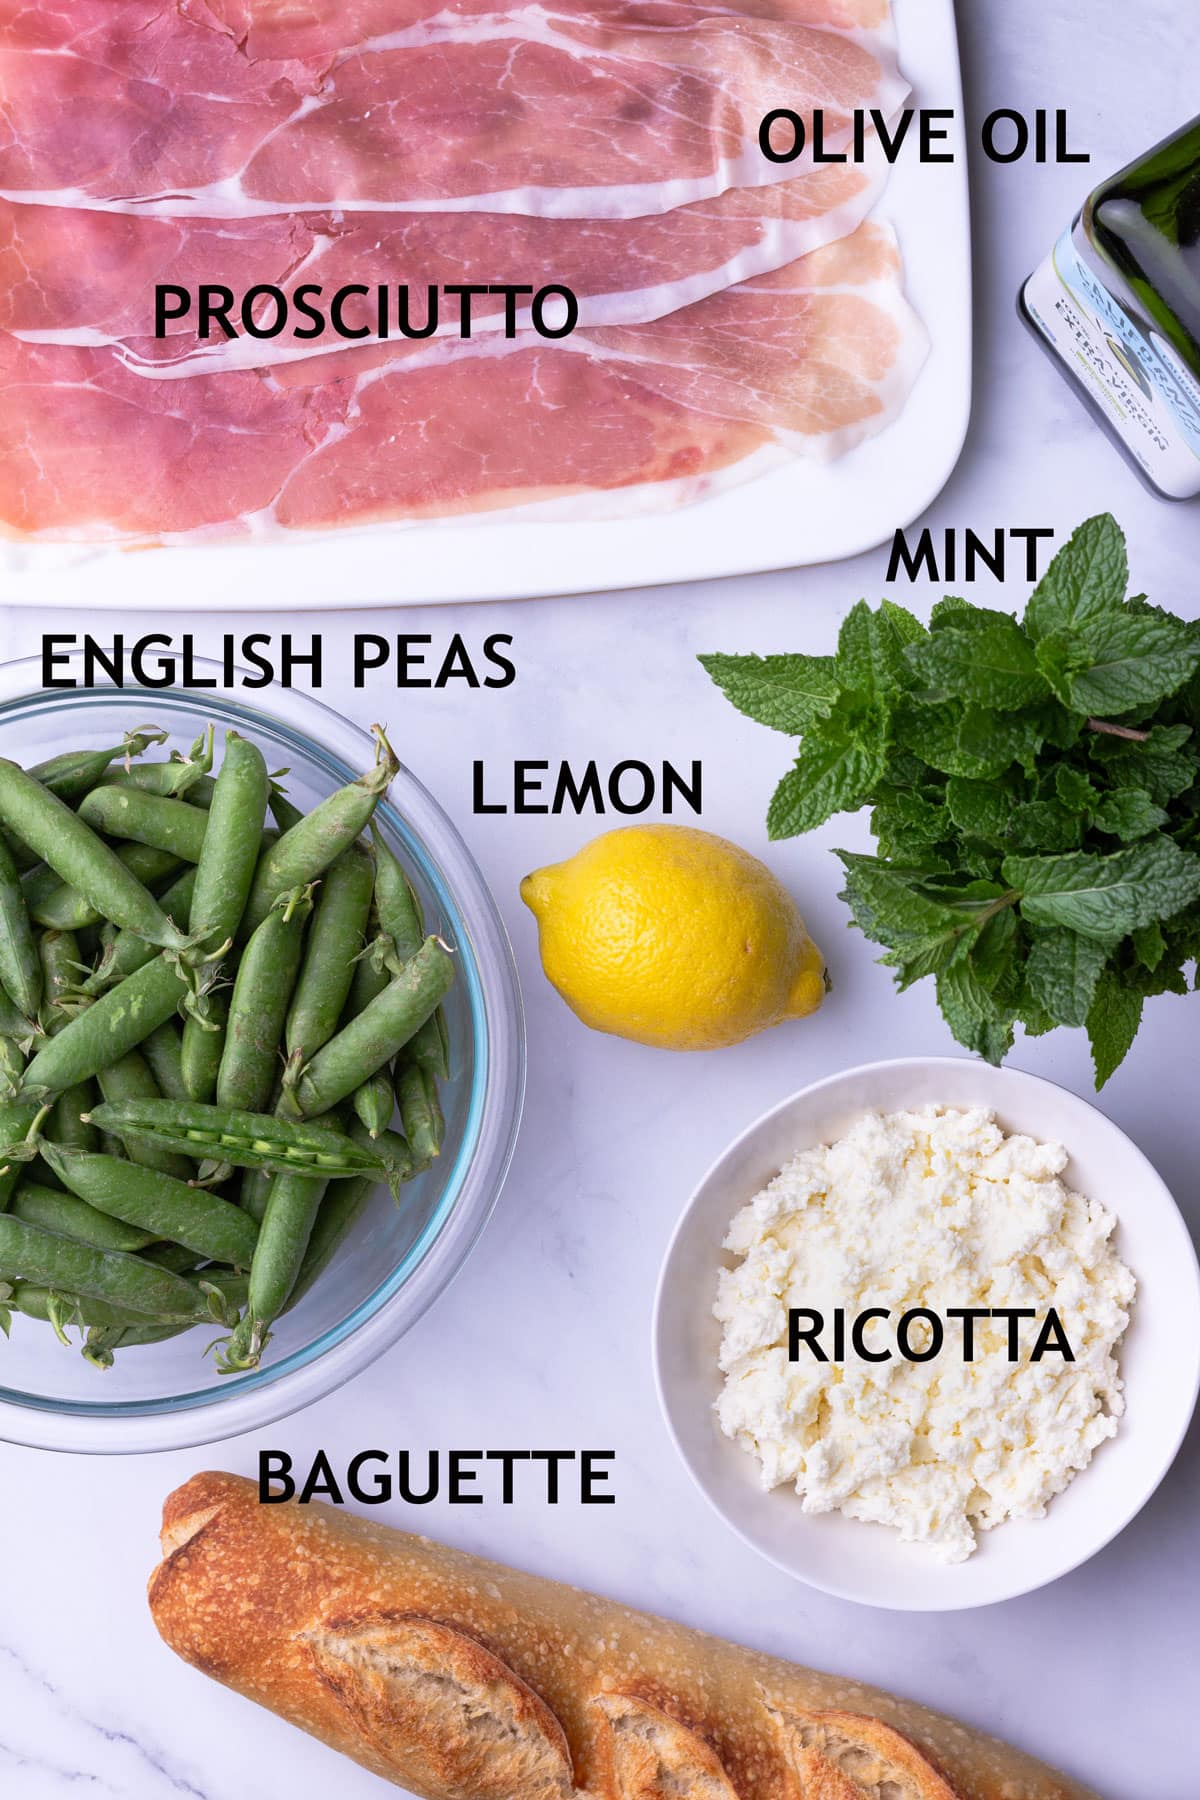 Overhead view of ingredients for crostini including prosciutto, olive oil, fresh English peas, lemon, mint, ricotta cheese and a baguette.